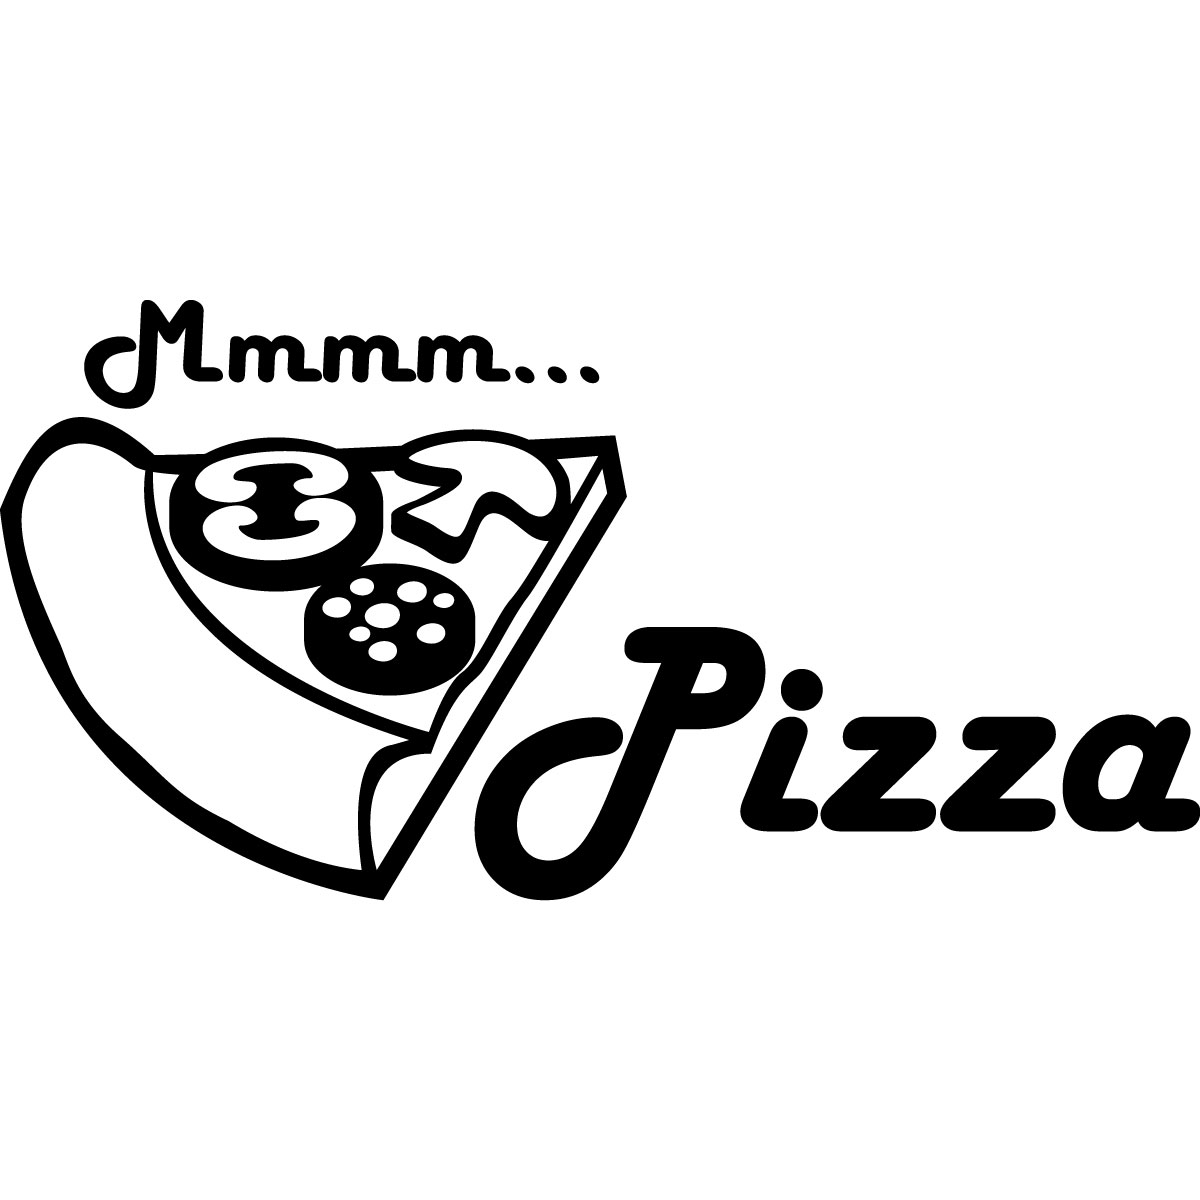 stickers muraux pour la cuisine sticker mmm pizza ambiance. Black Bedroom Furniture Sets. Home Design Ideas